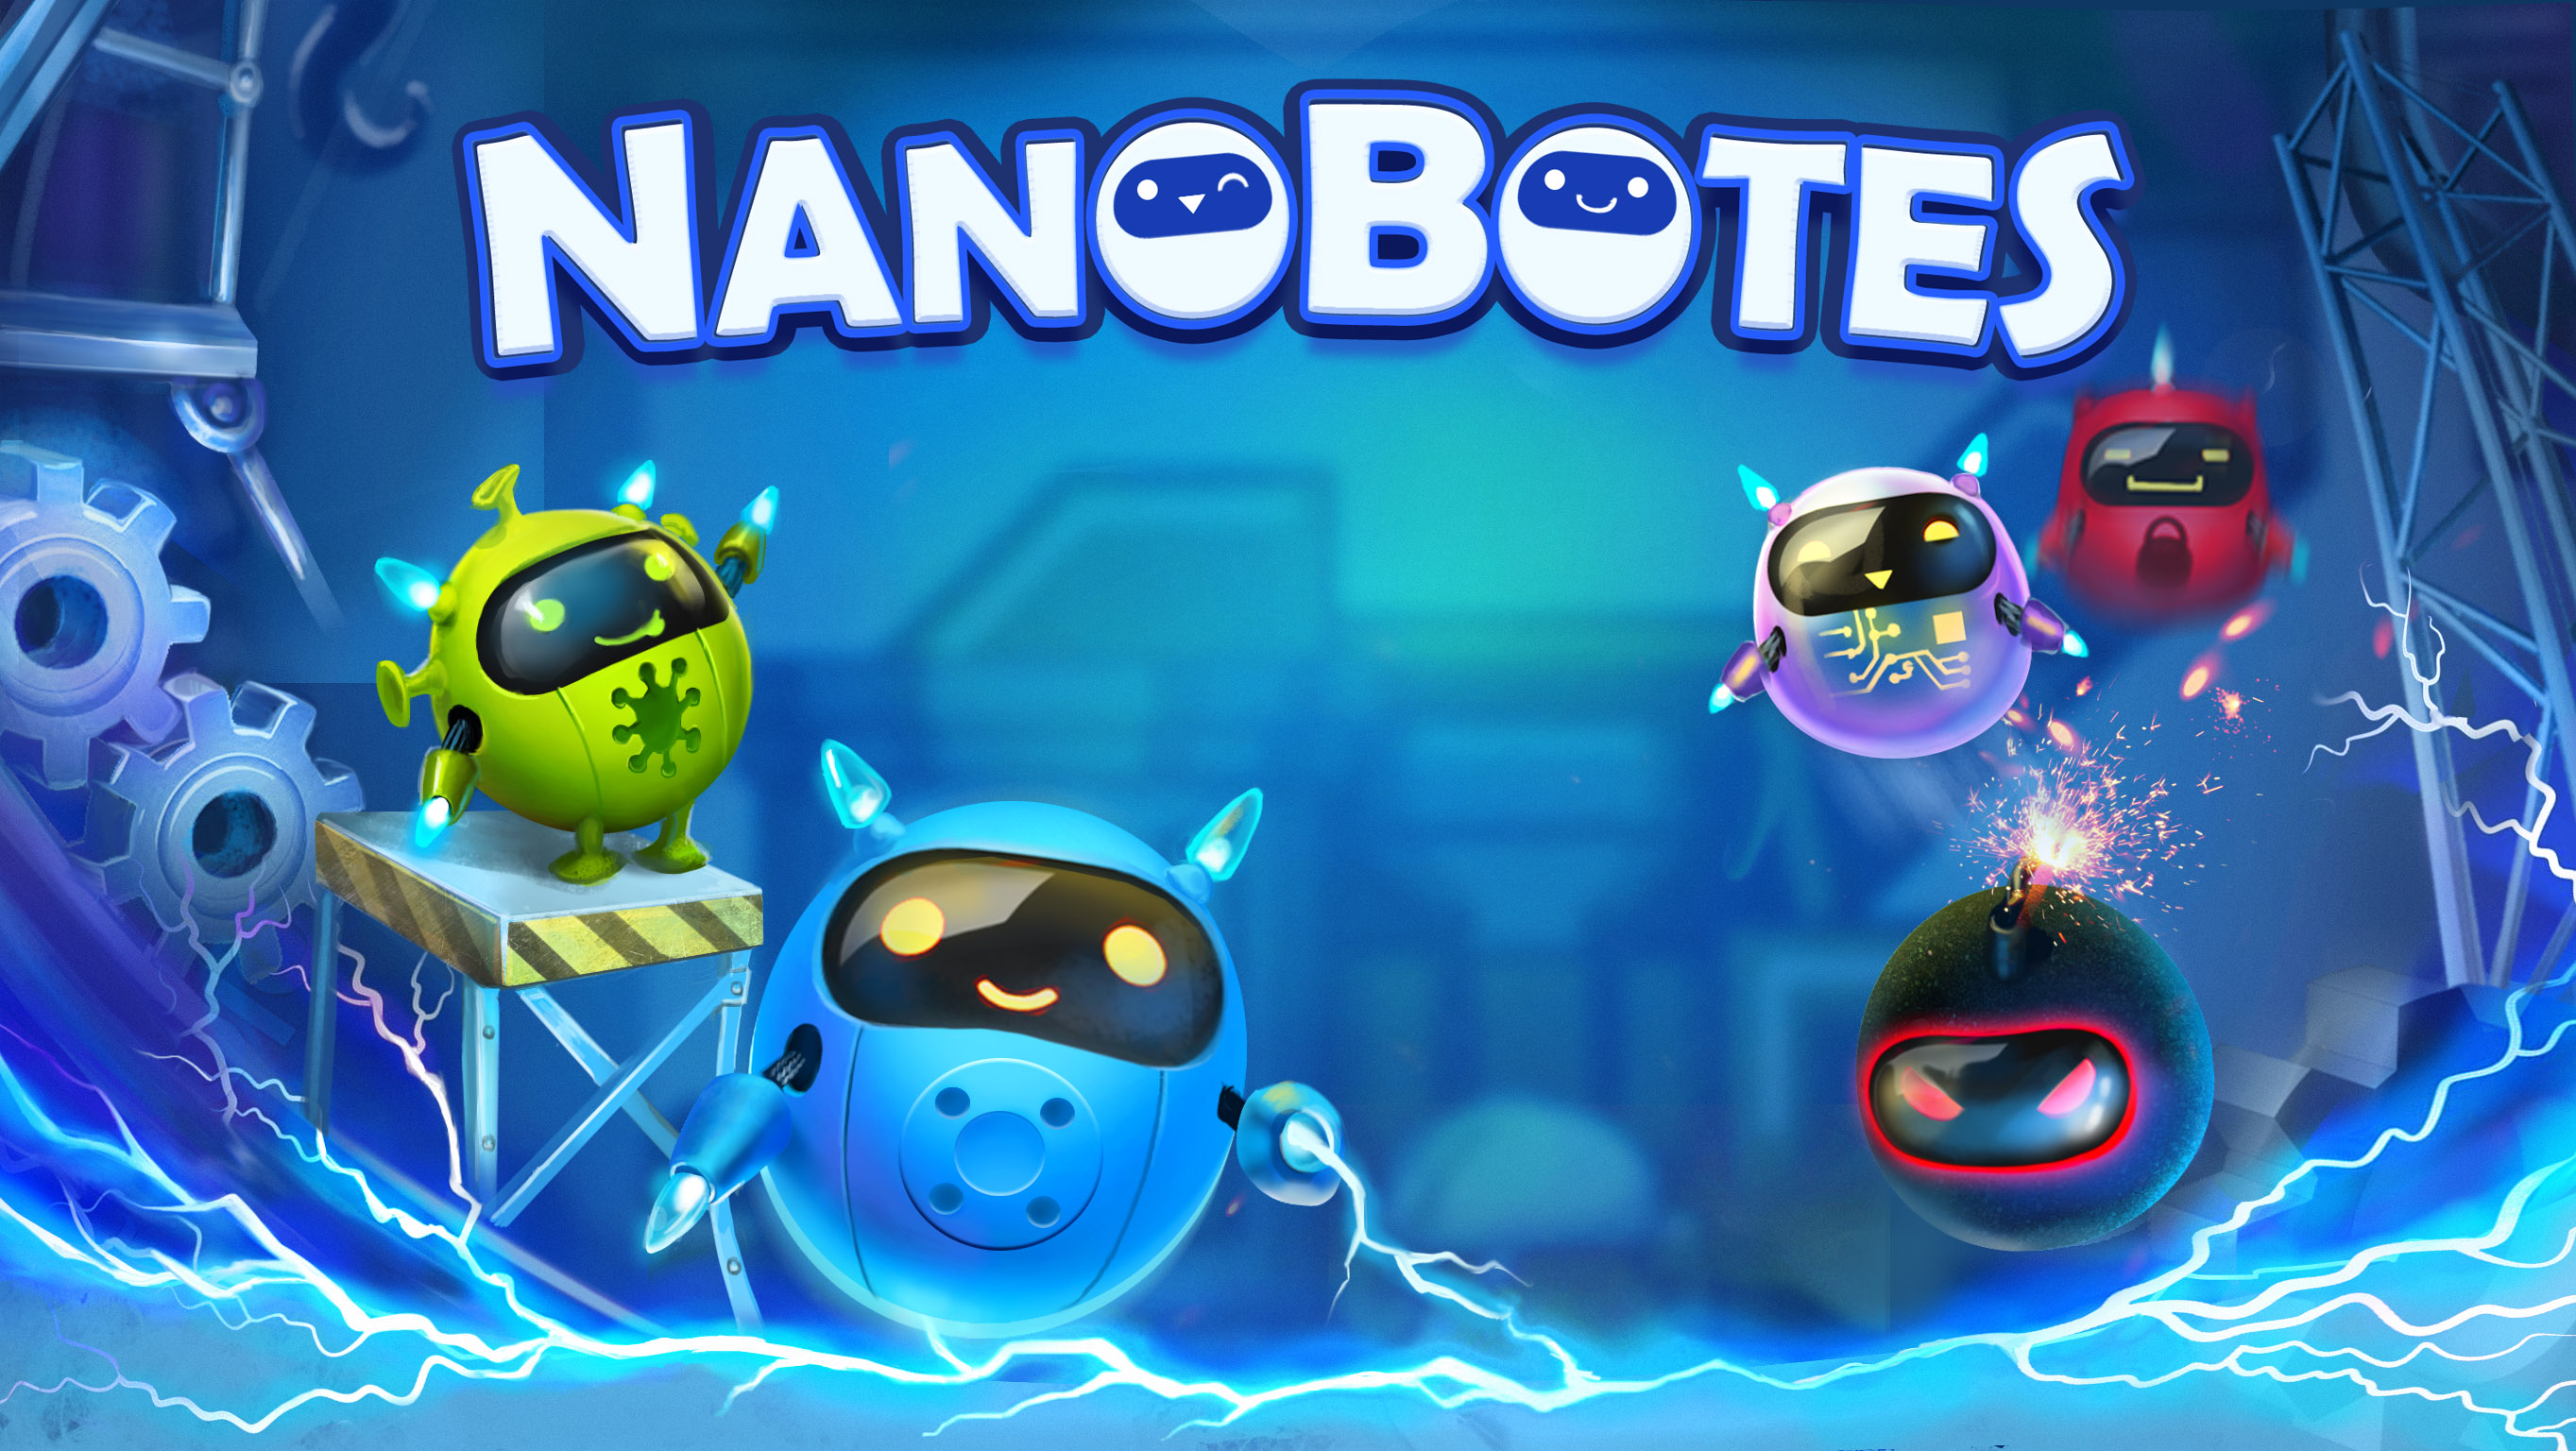 Nanobots beta